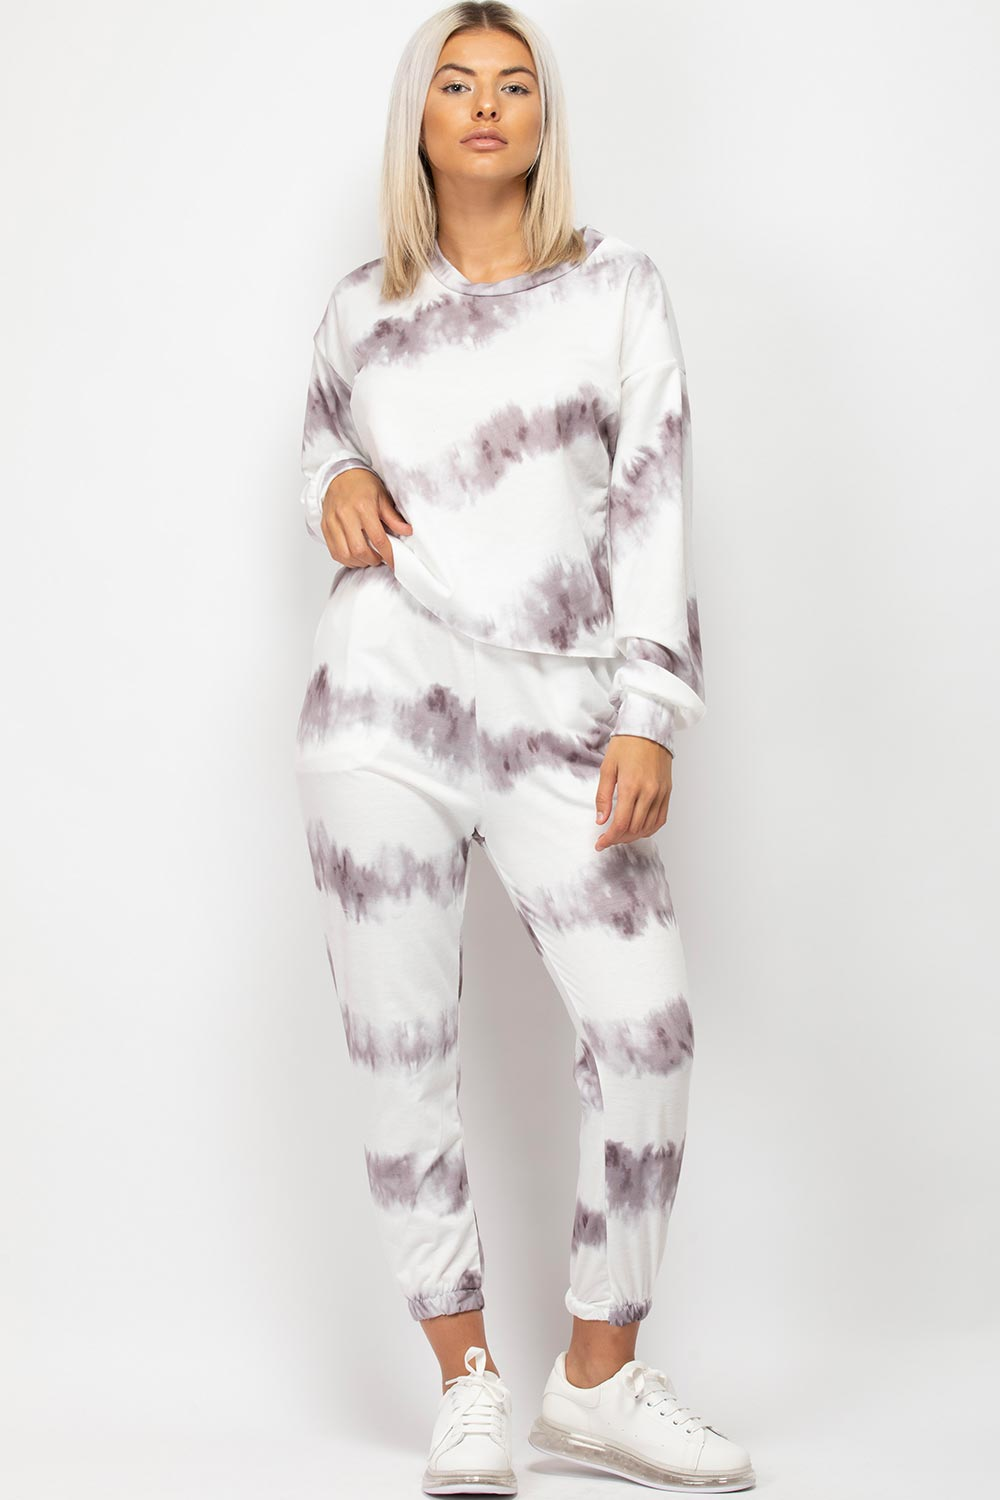 grey tie dye loungewear set